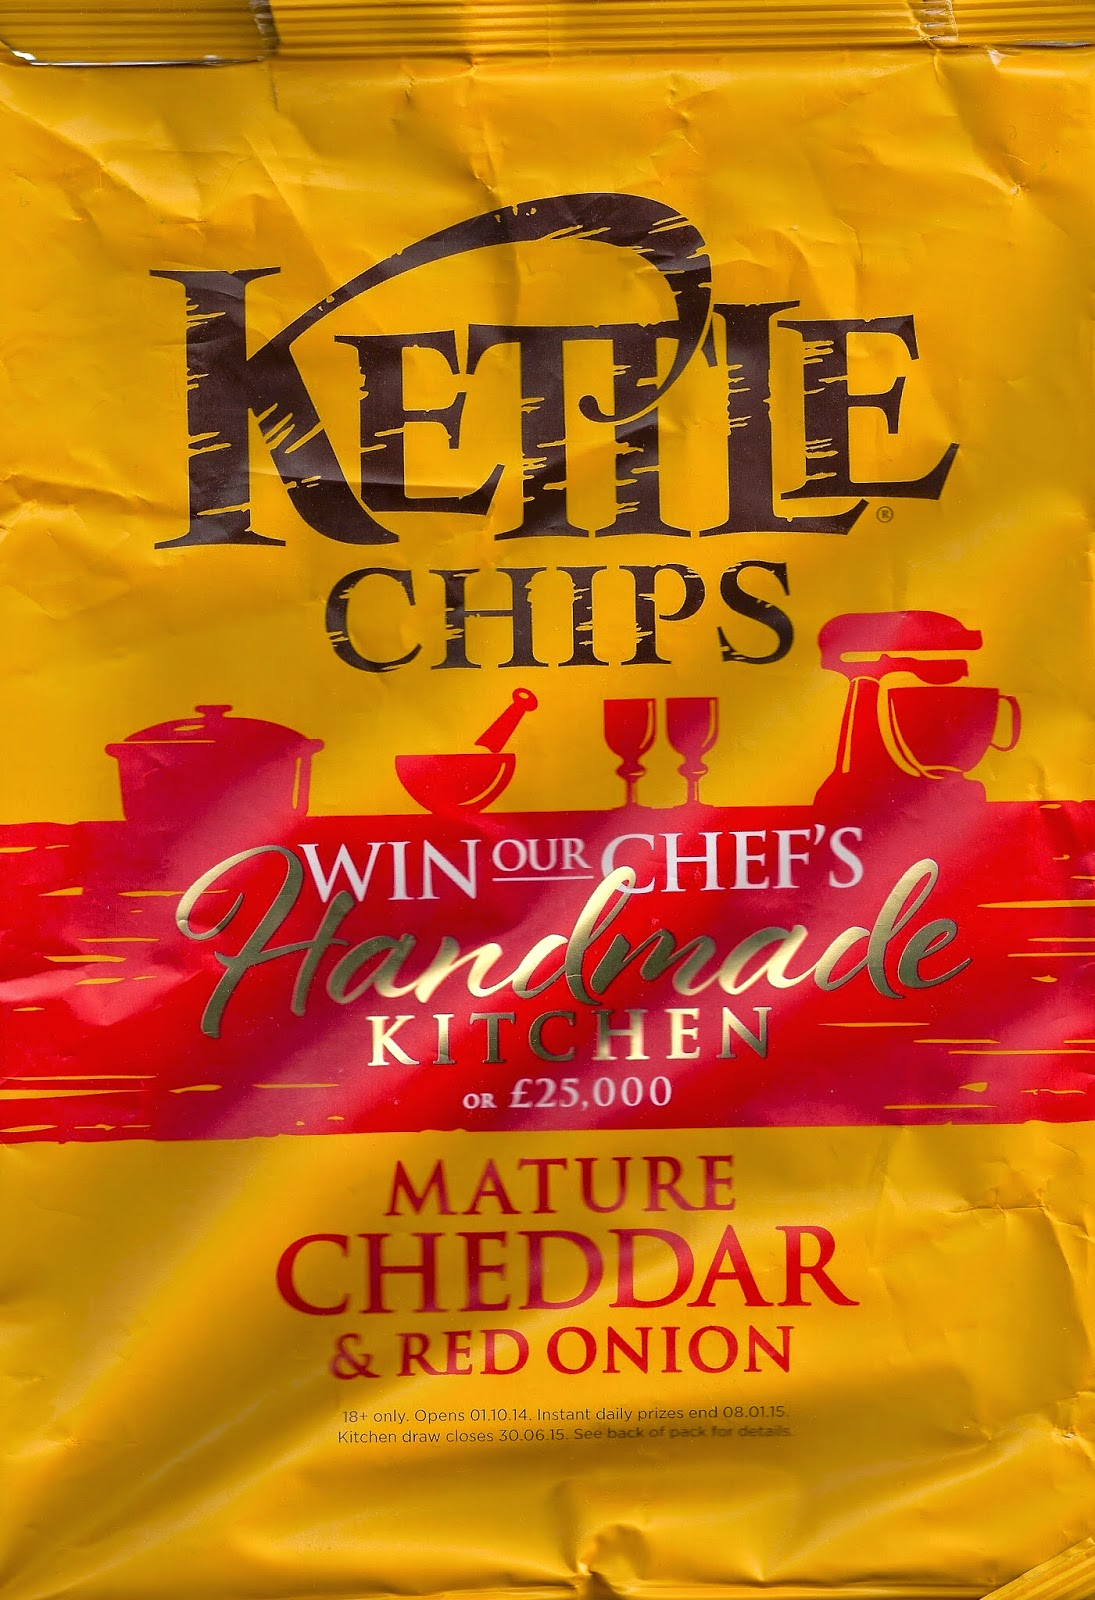 Kettle crisps mature cheddar